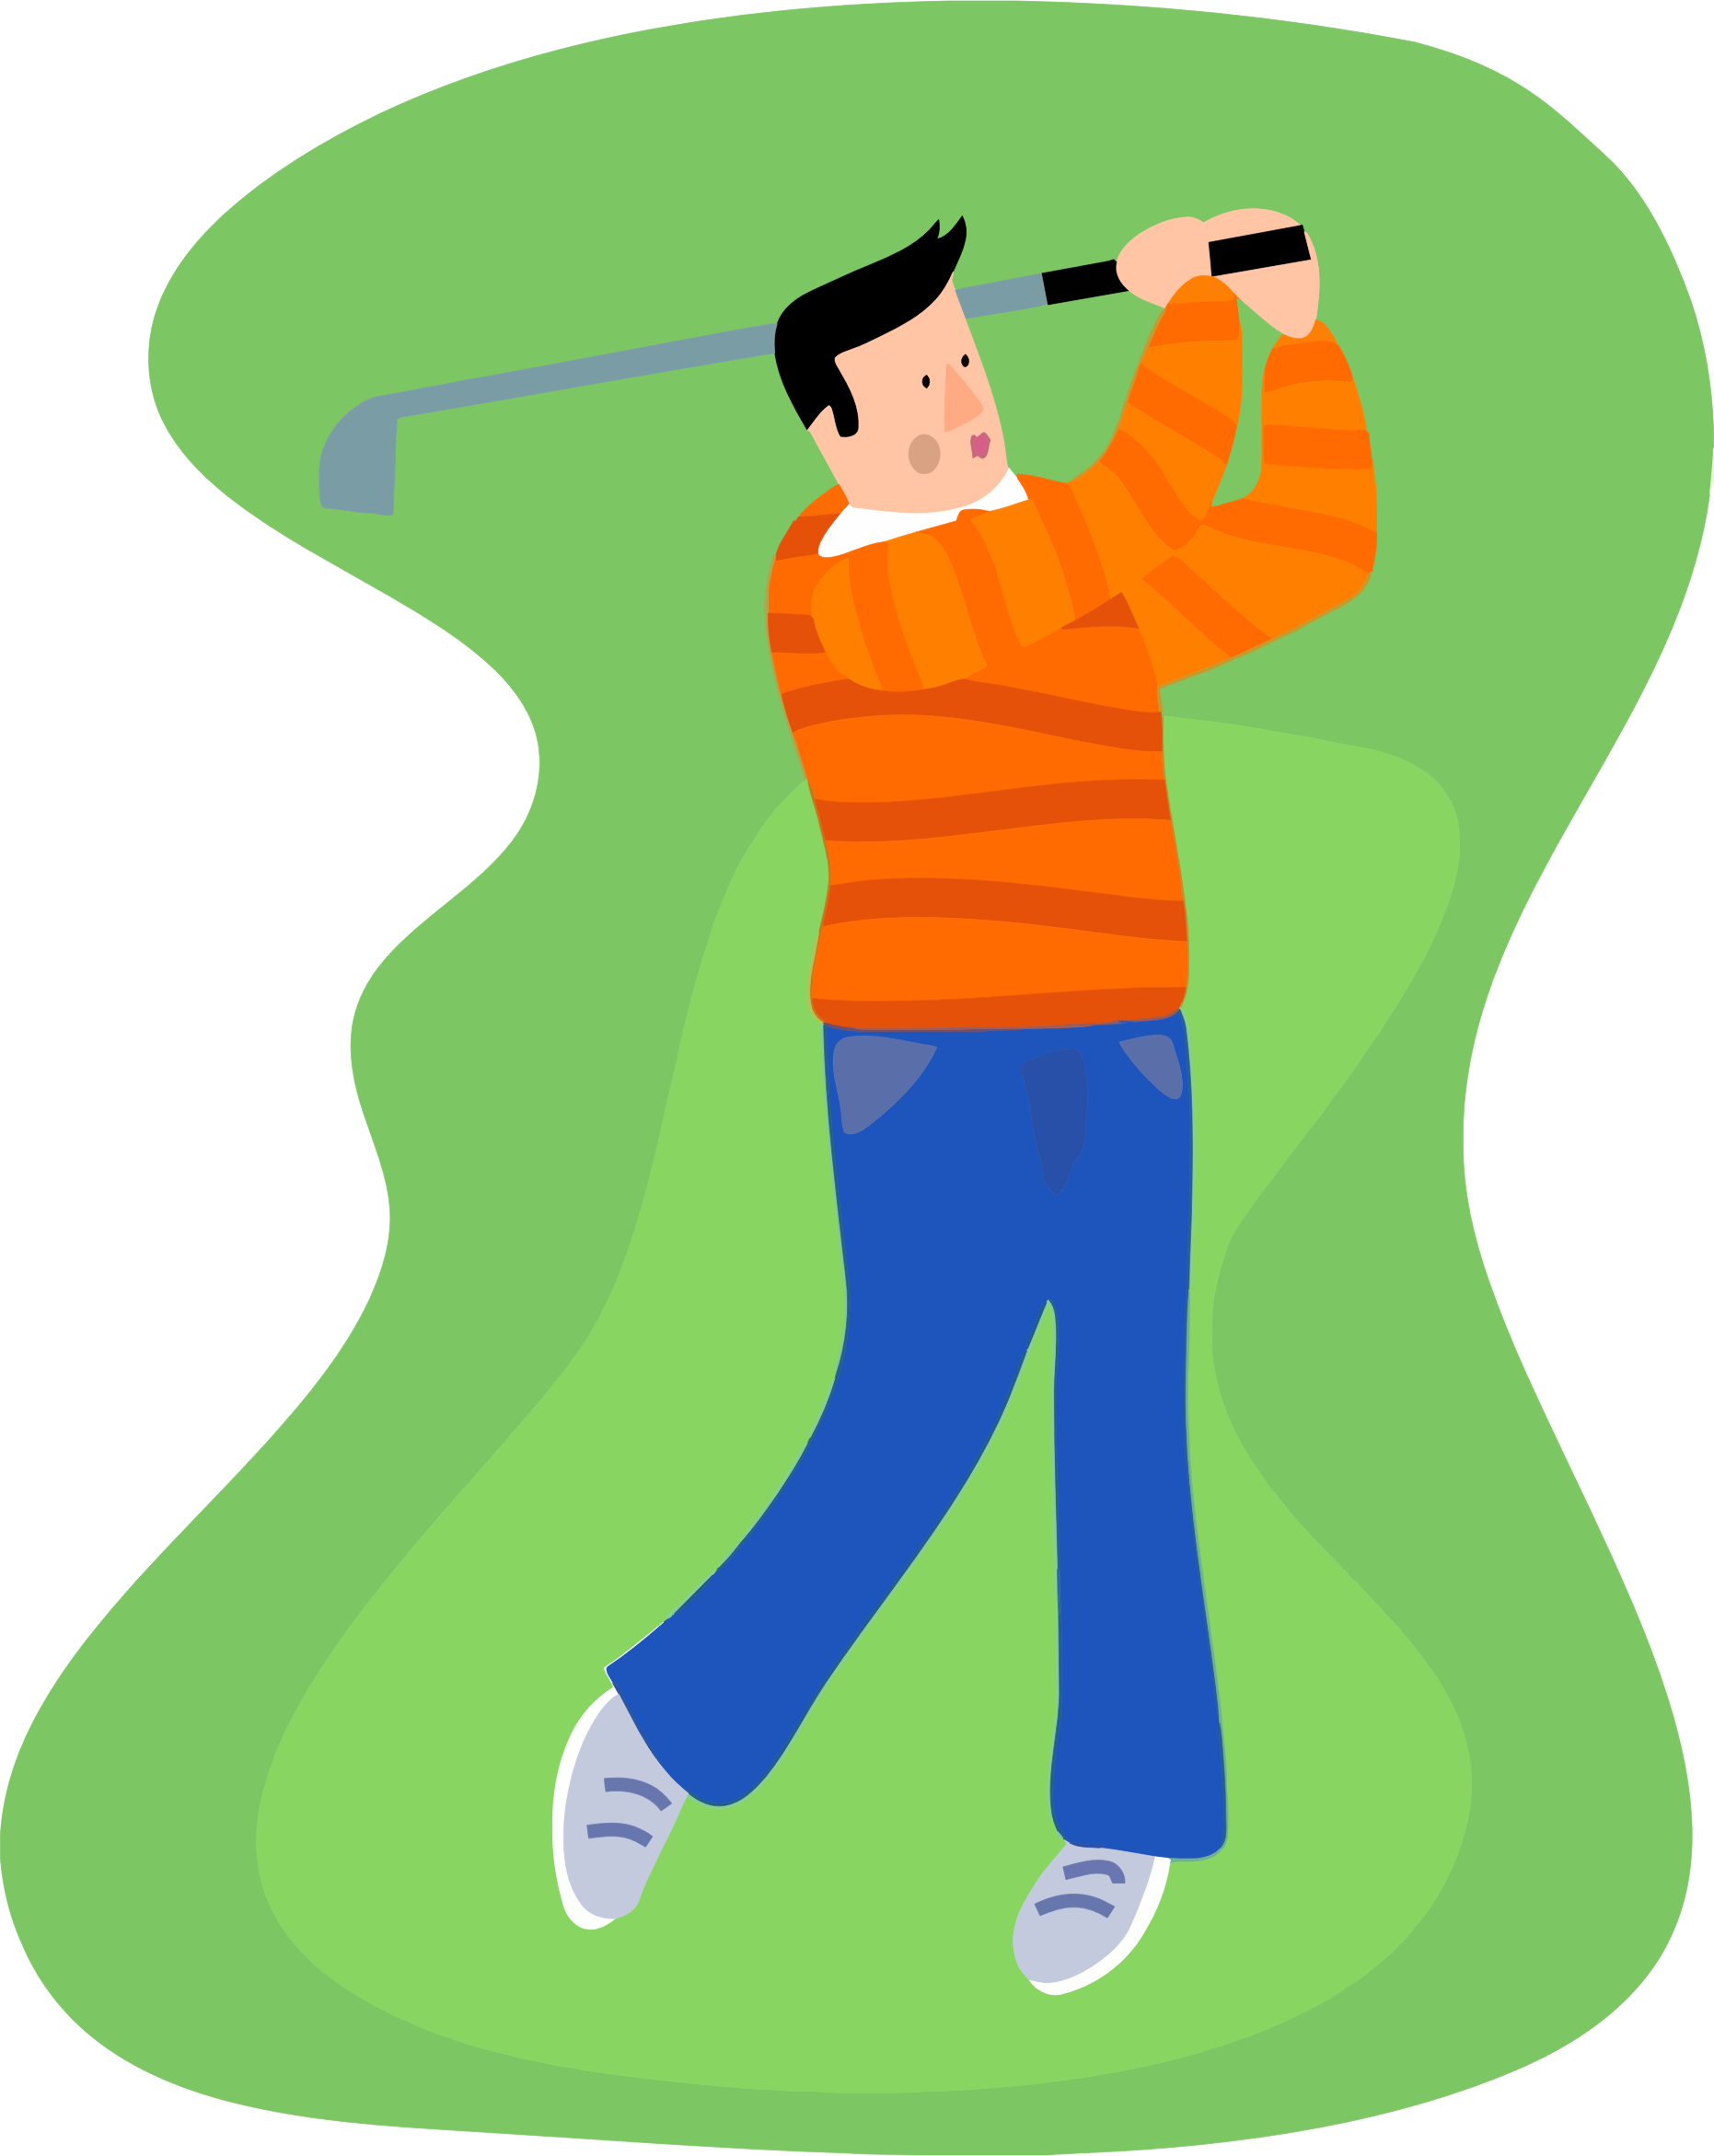 Golfer clipart boy. Golfing guy icons png